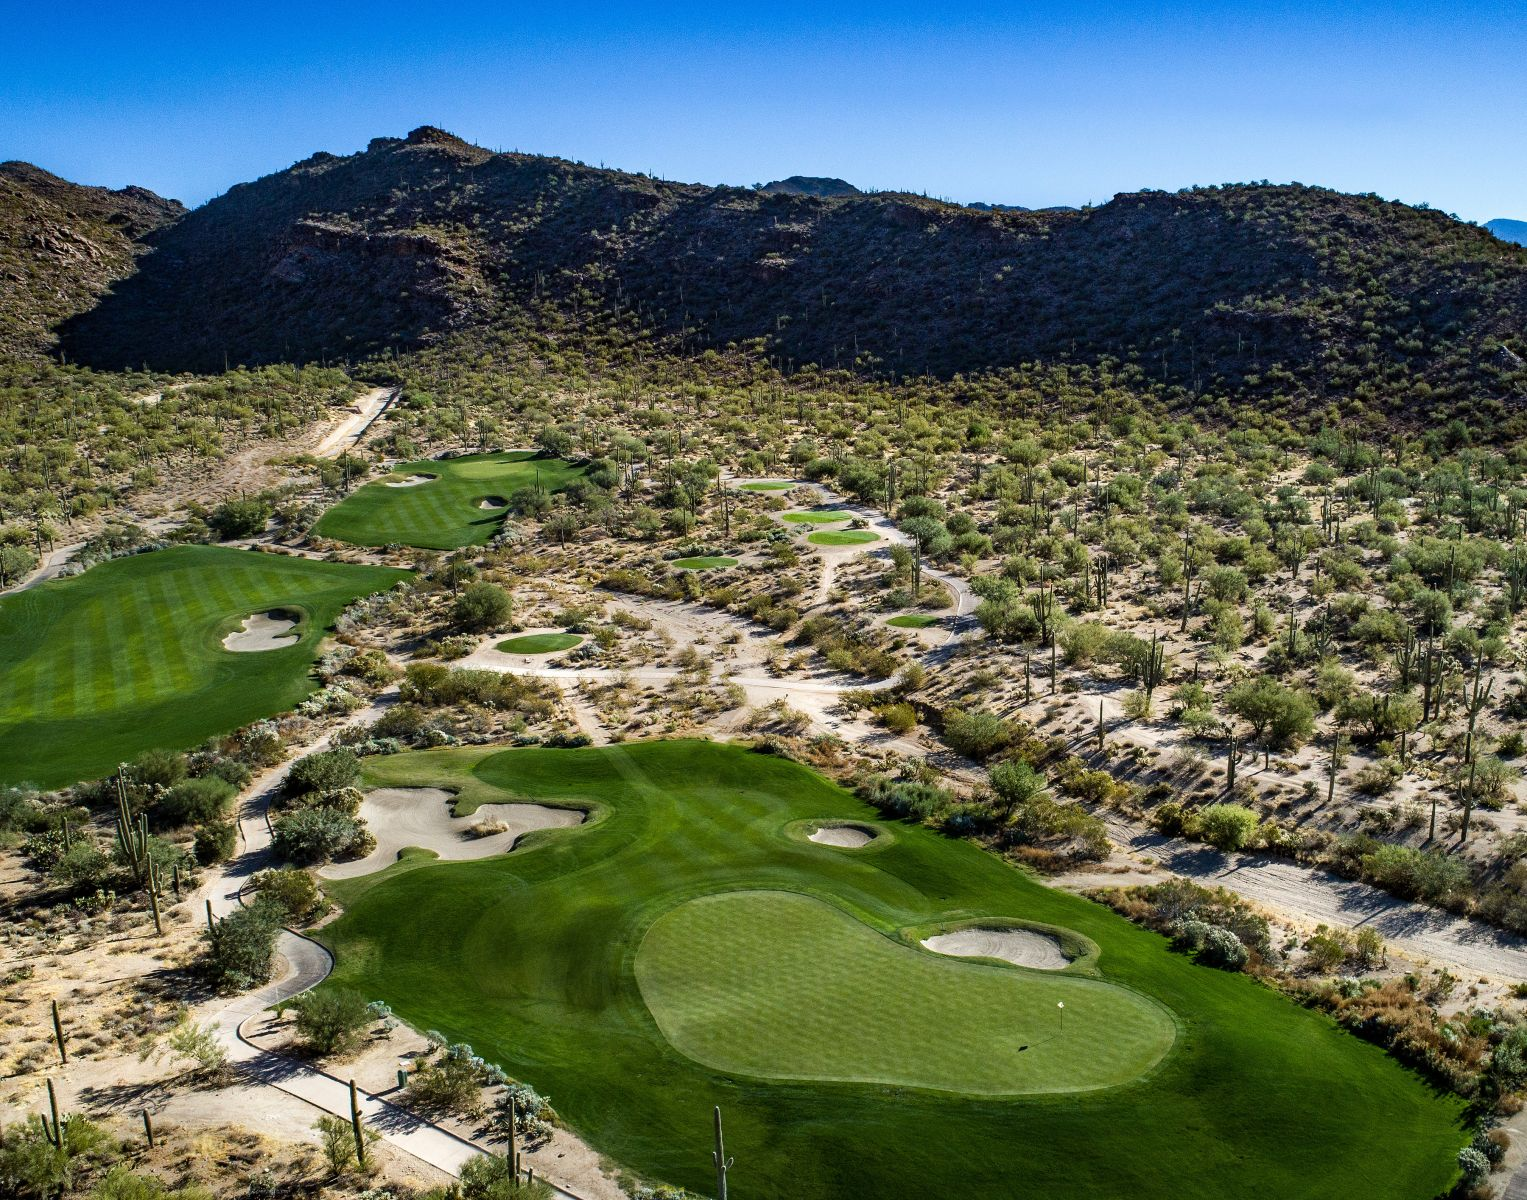 Aerial view of hole 7 on the Tortolita course